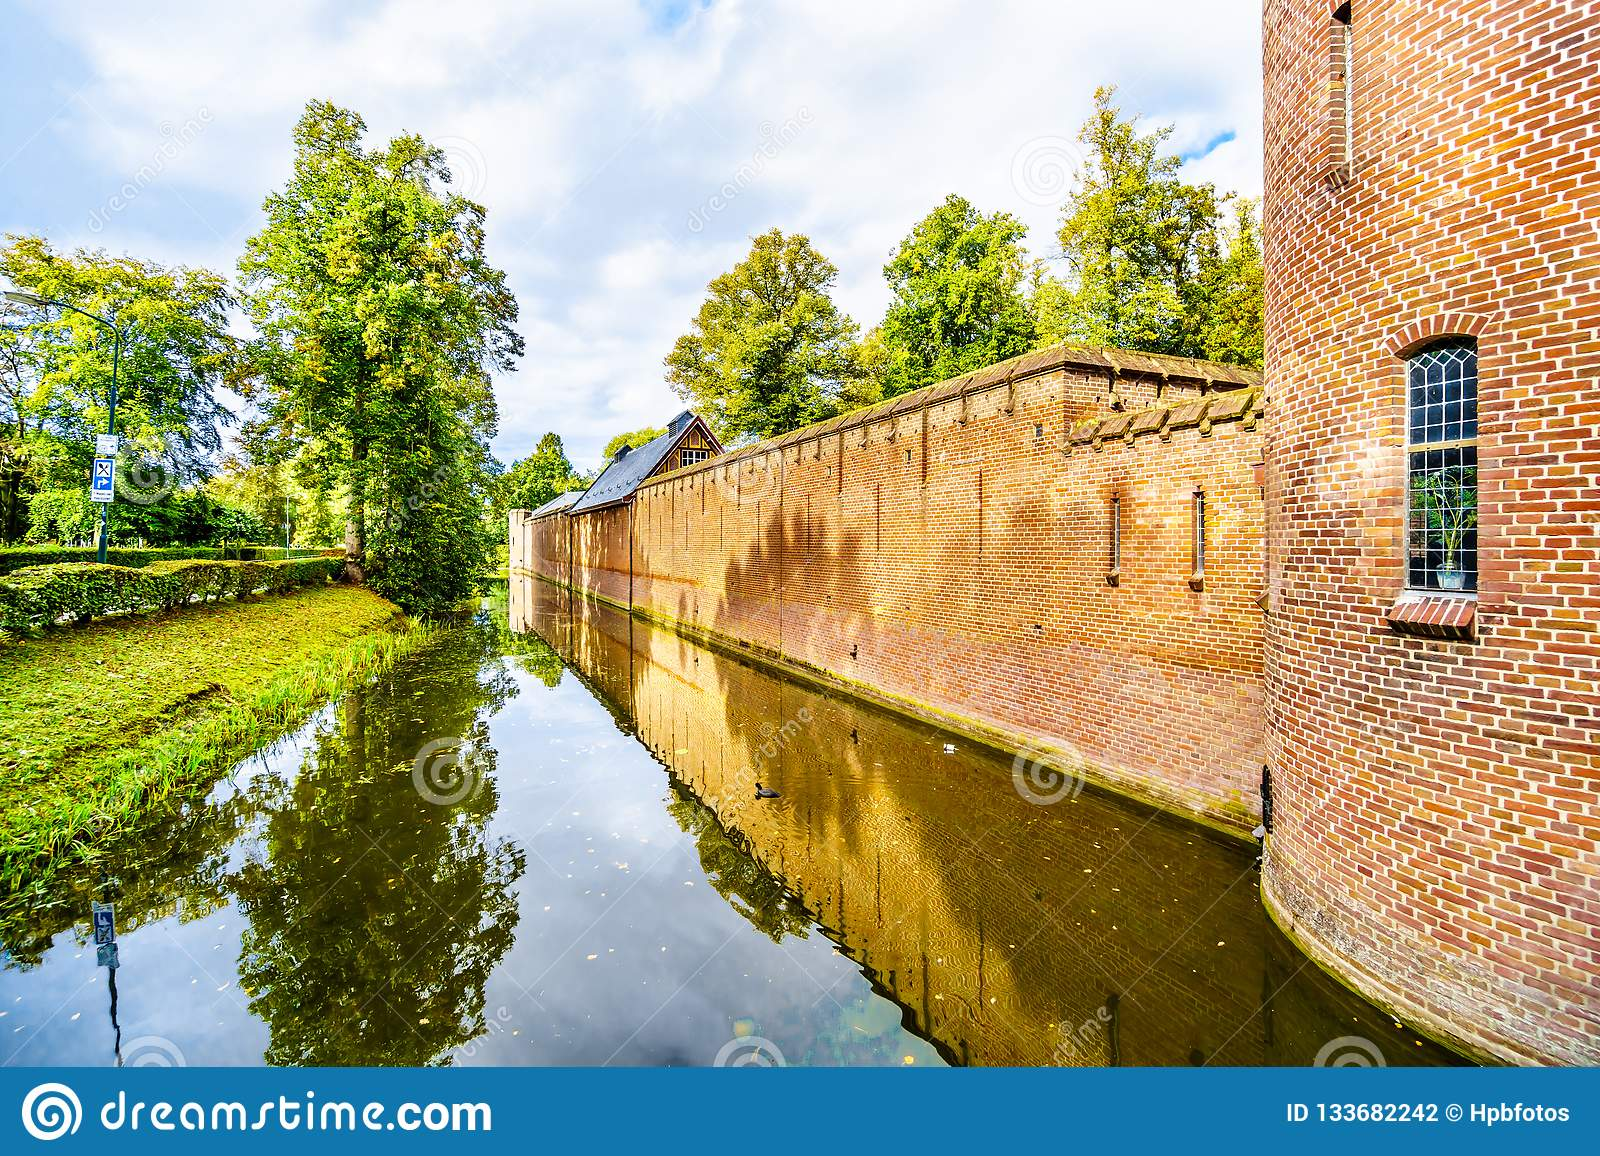 Moat surrounding Castle De Haar, a 14th century Castle completely restored in the late 19th Century